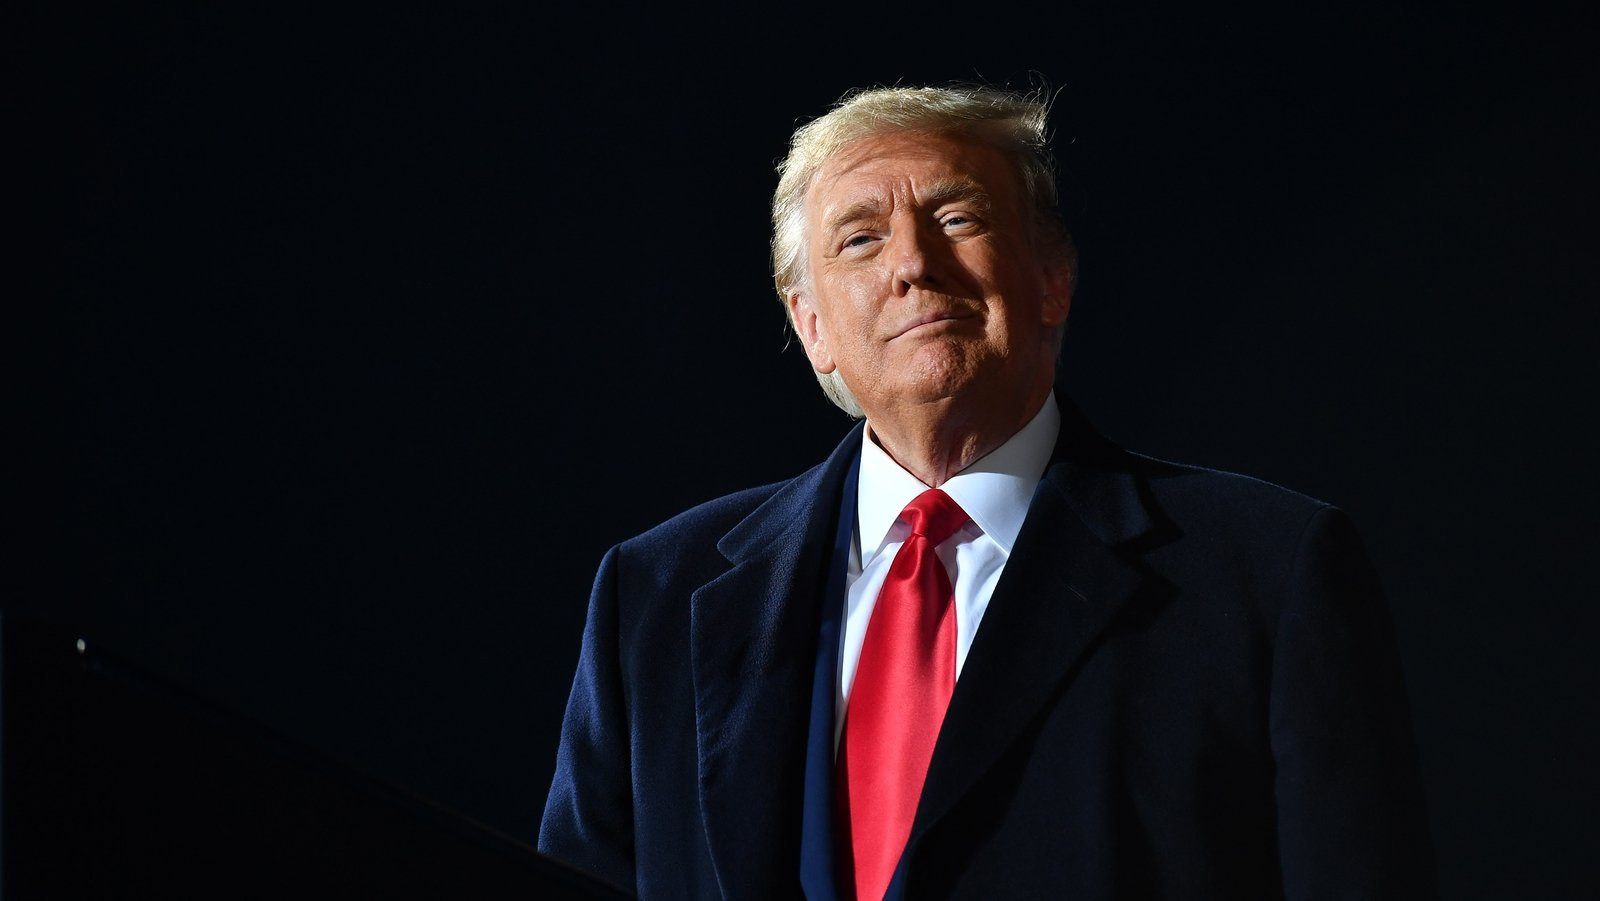 US President Donald Trump has told the UN General Assembly that China must be held accountable by the world for its actions over the Covid-19 pandemic.